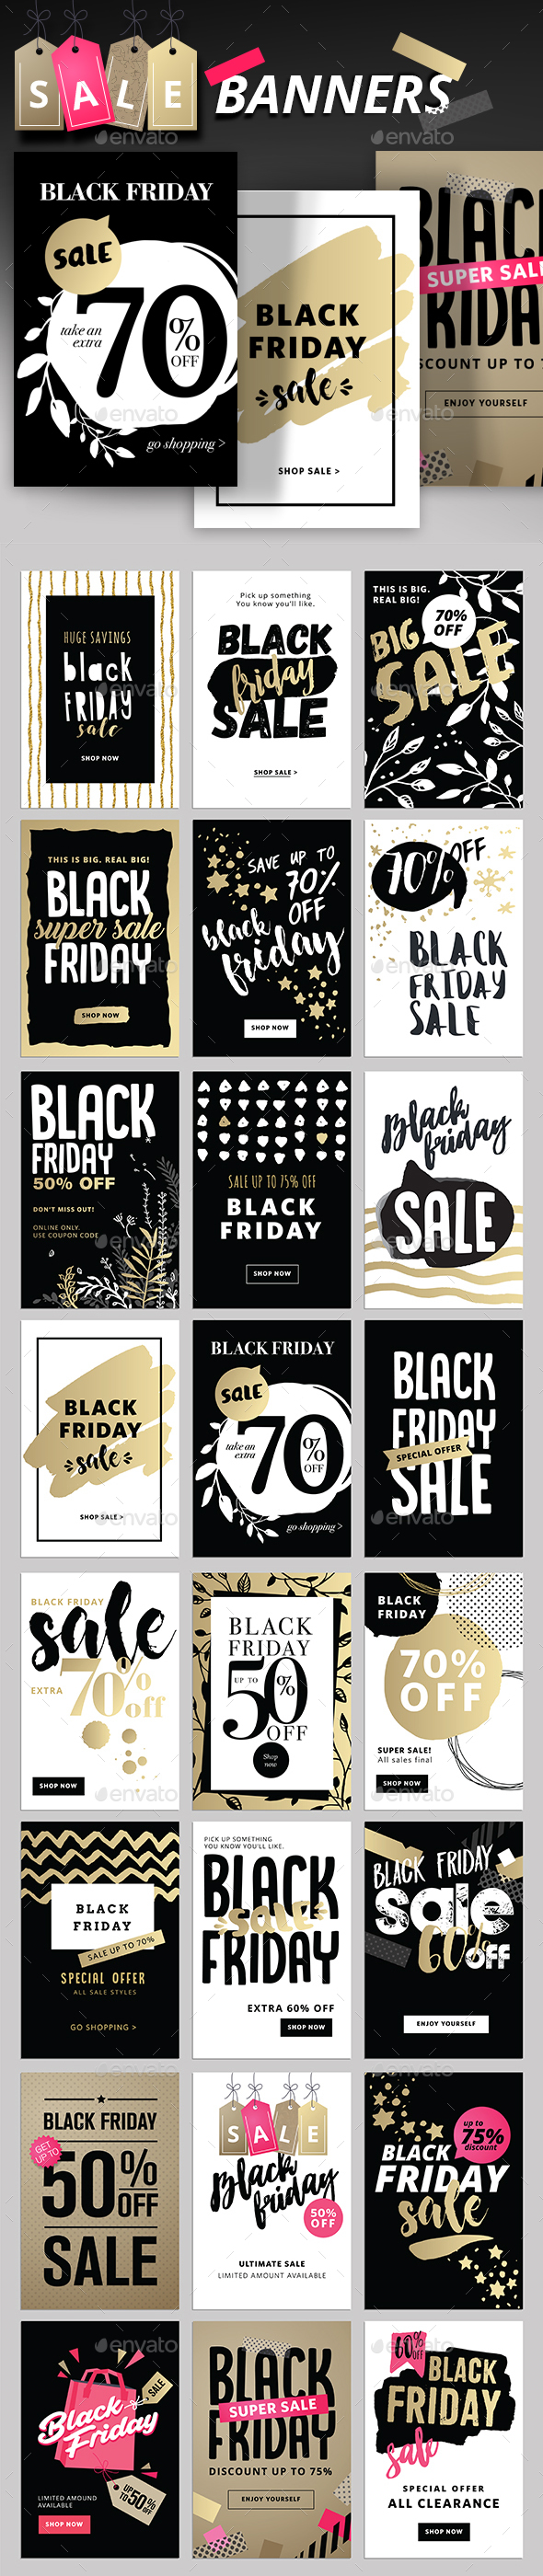 Black Friday Social Media Banners - Banners & Ads Web Elements